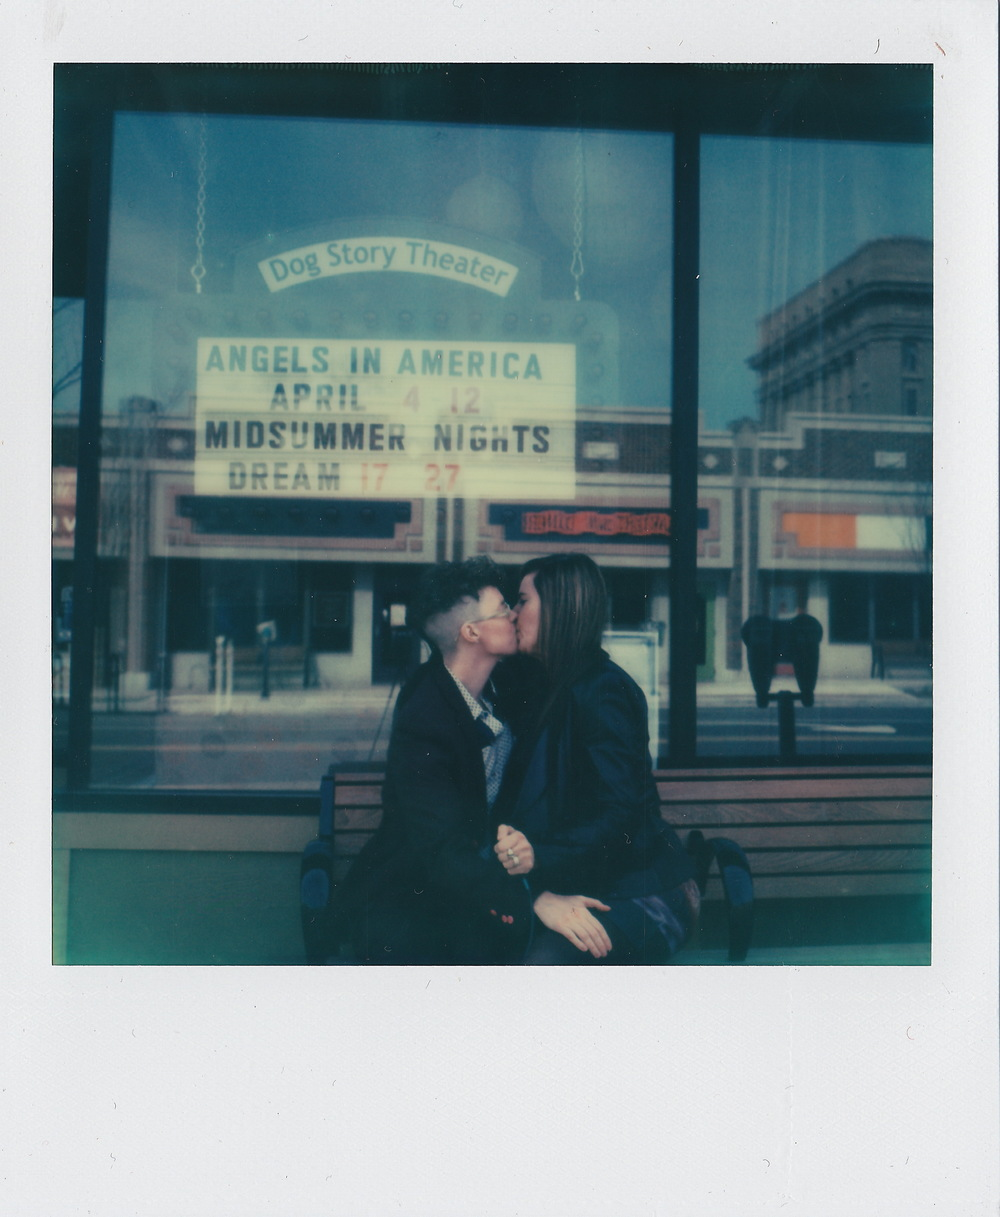 Dog Story Theater, Grand Rapids, Michigan, from Kissing on Main Street, 2015, original SX-70 Polaroid.